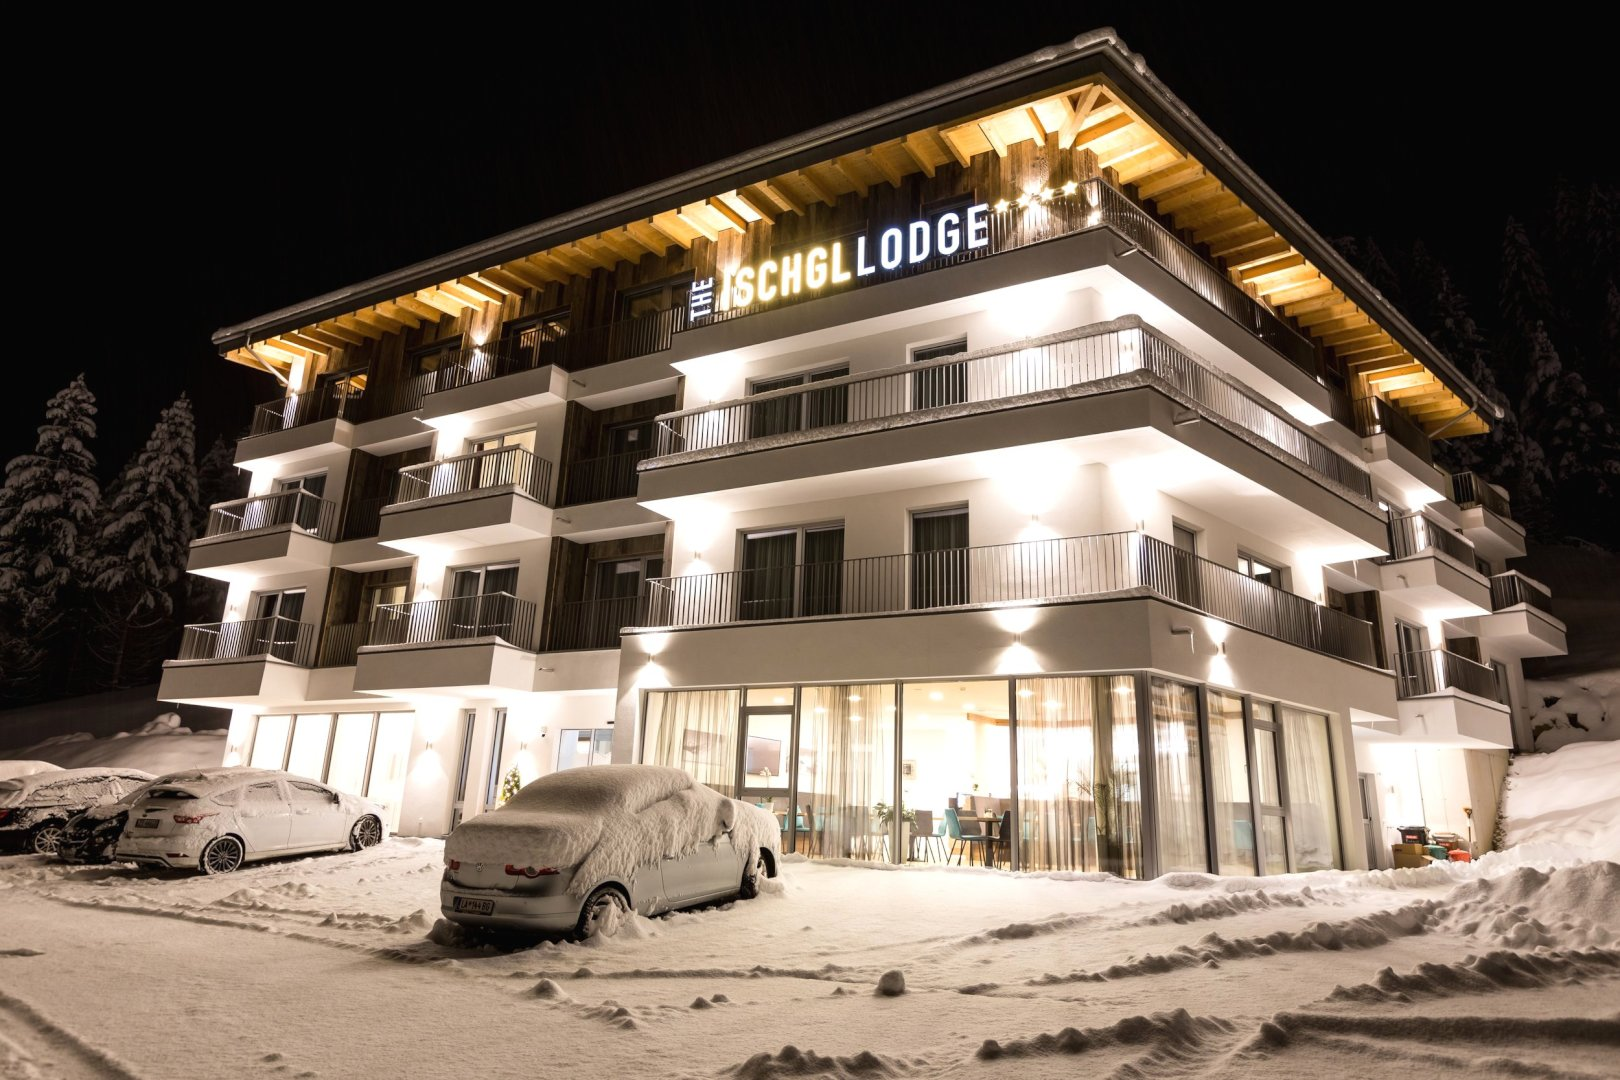 The Ischgl Lodge